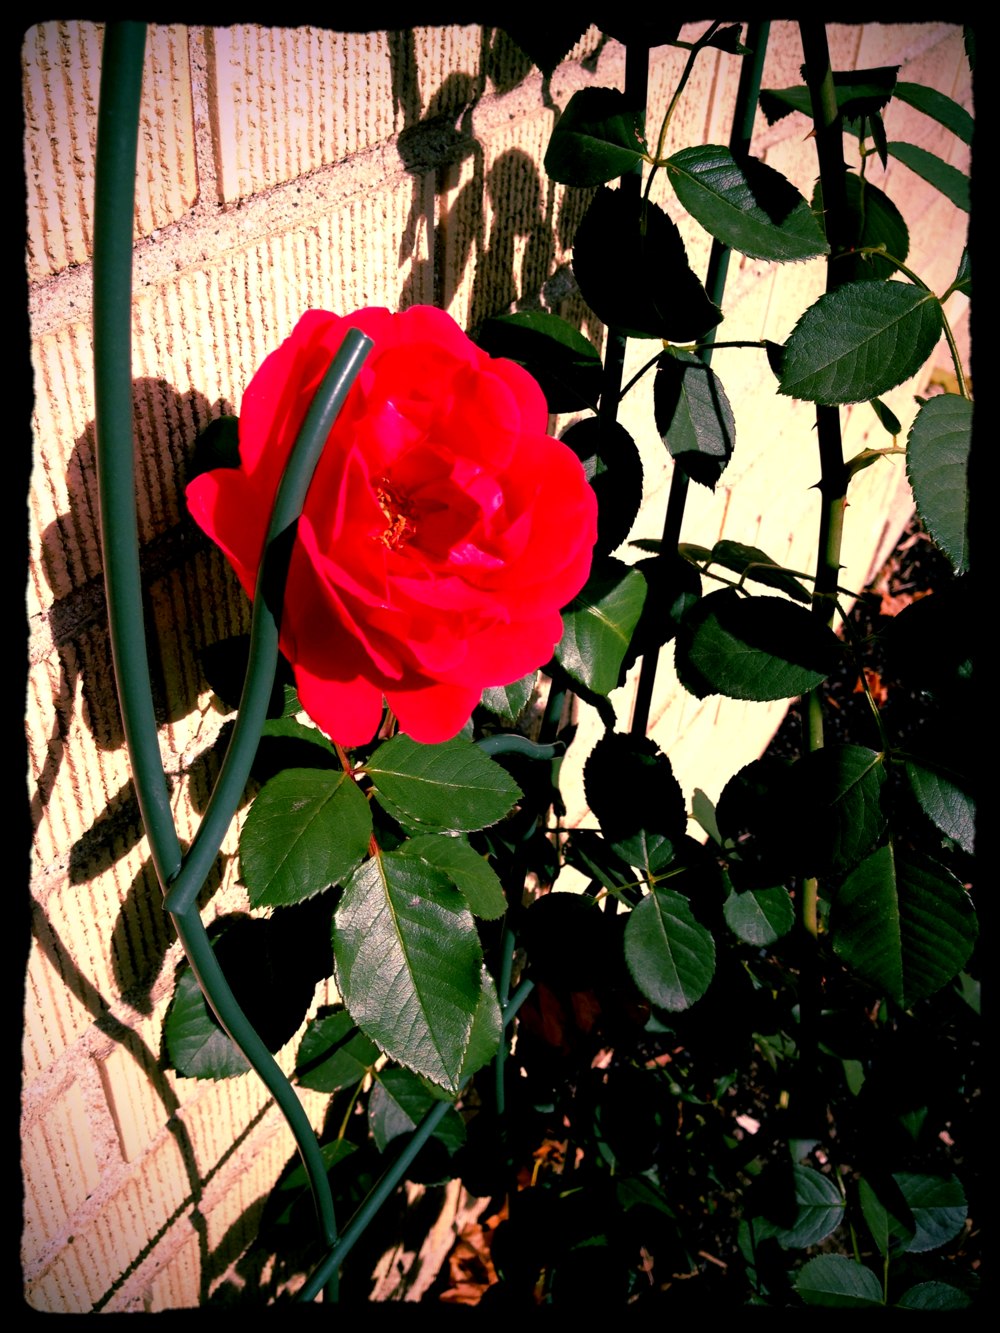 final rose of the season